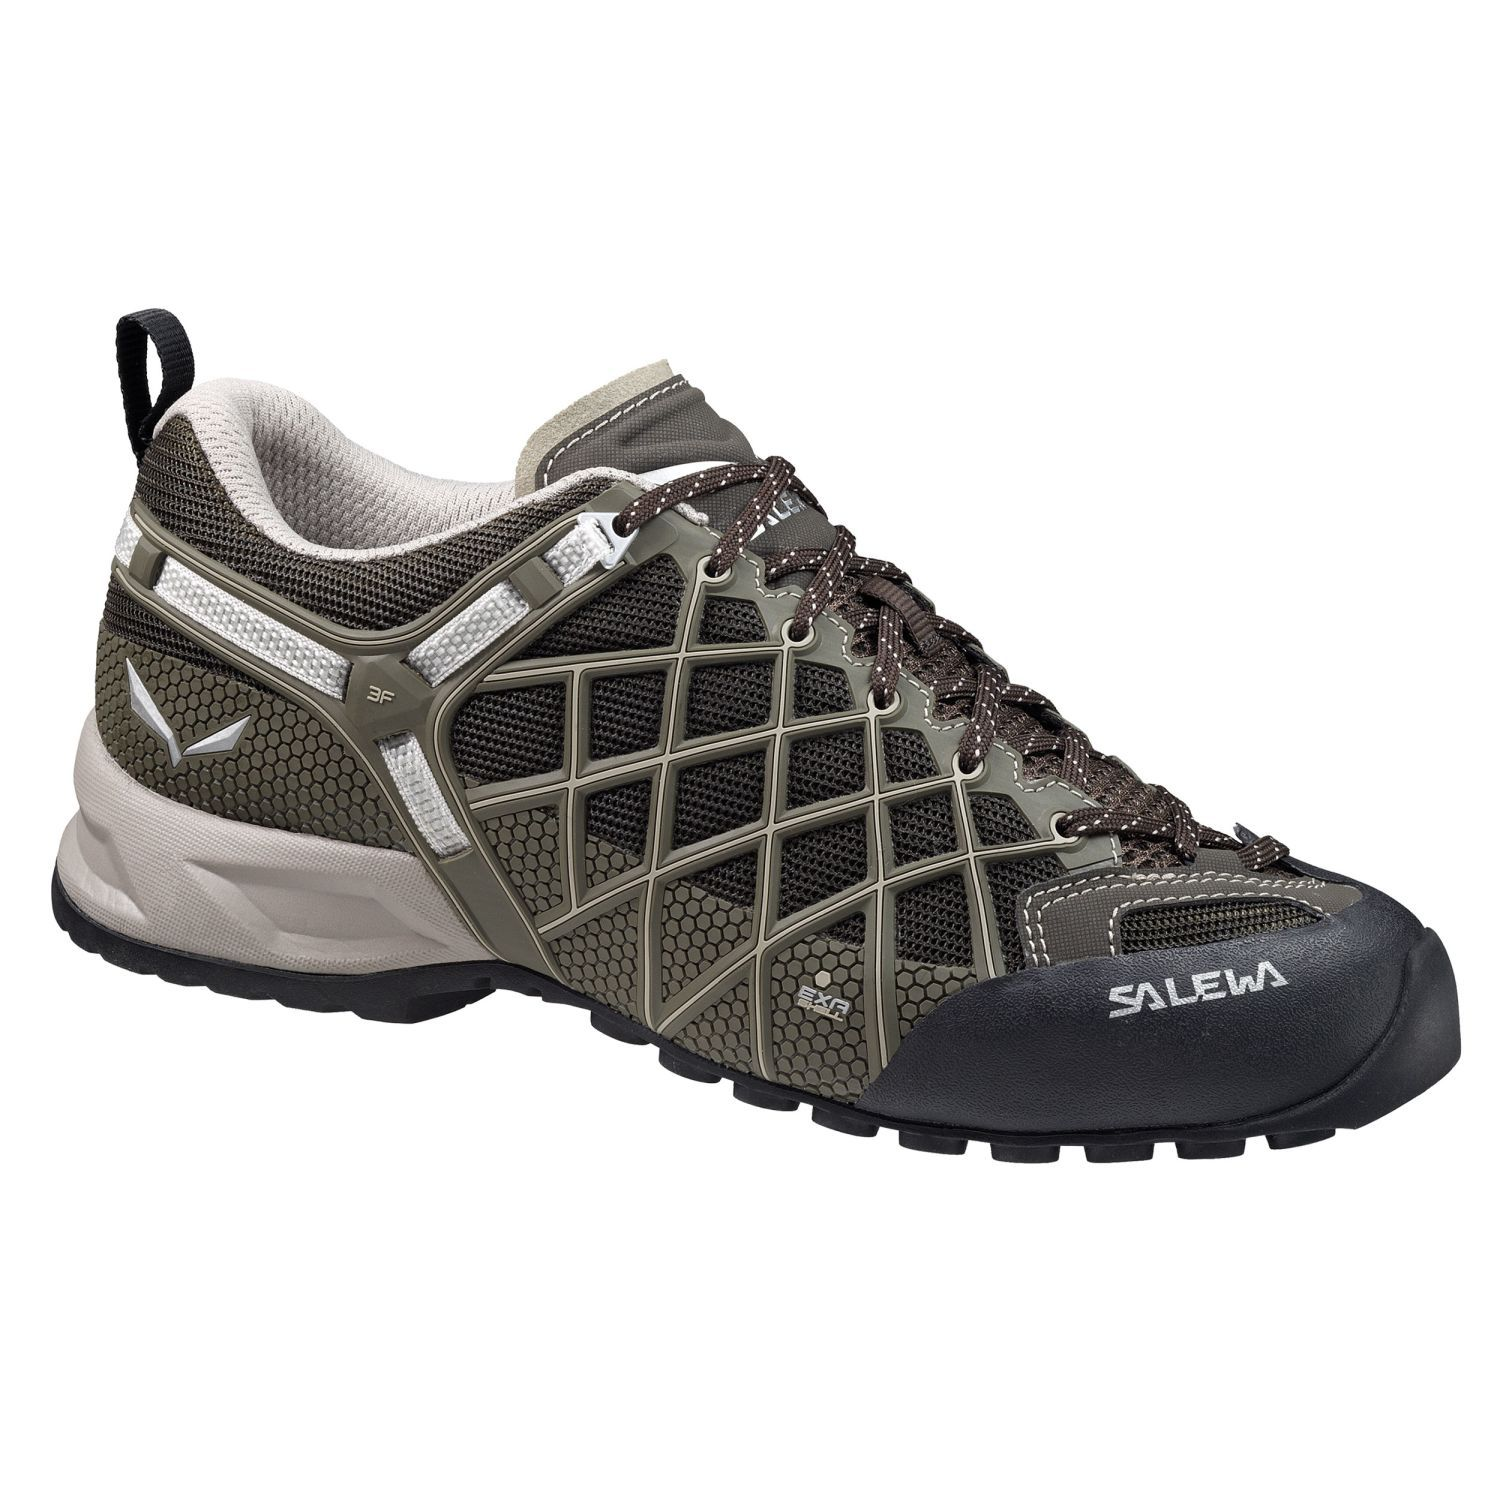 Salewa Wildfire Vent approach shoes olive